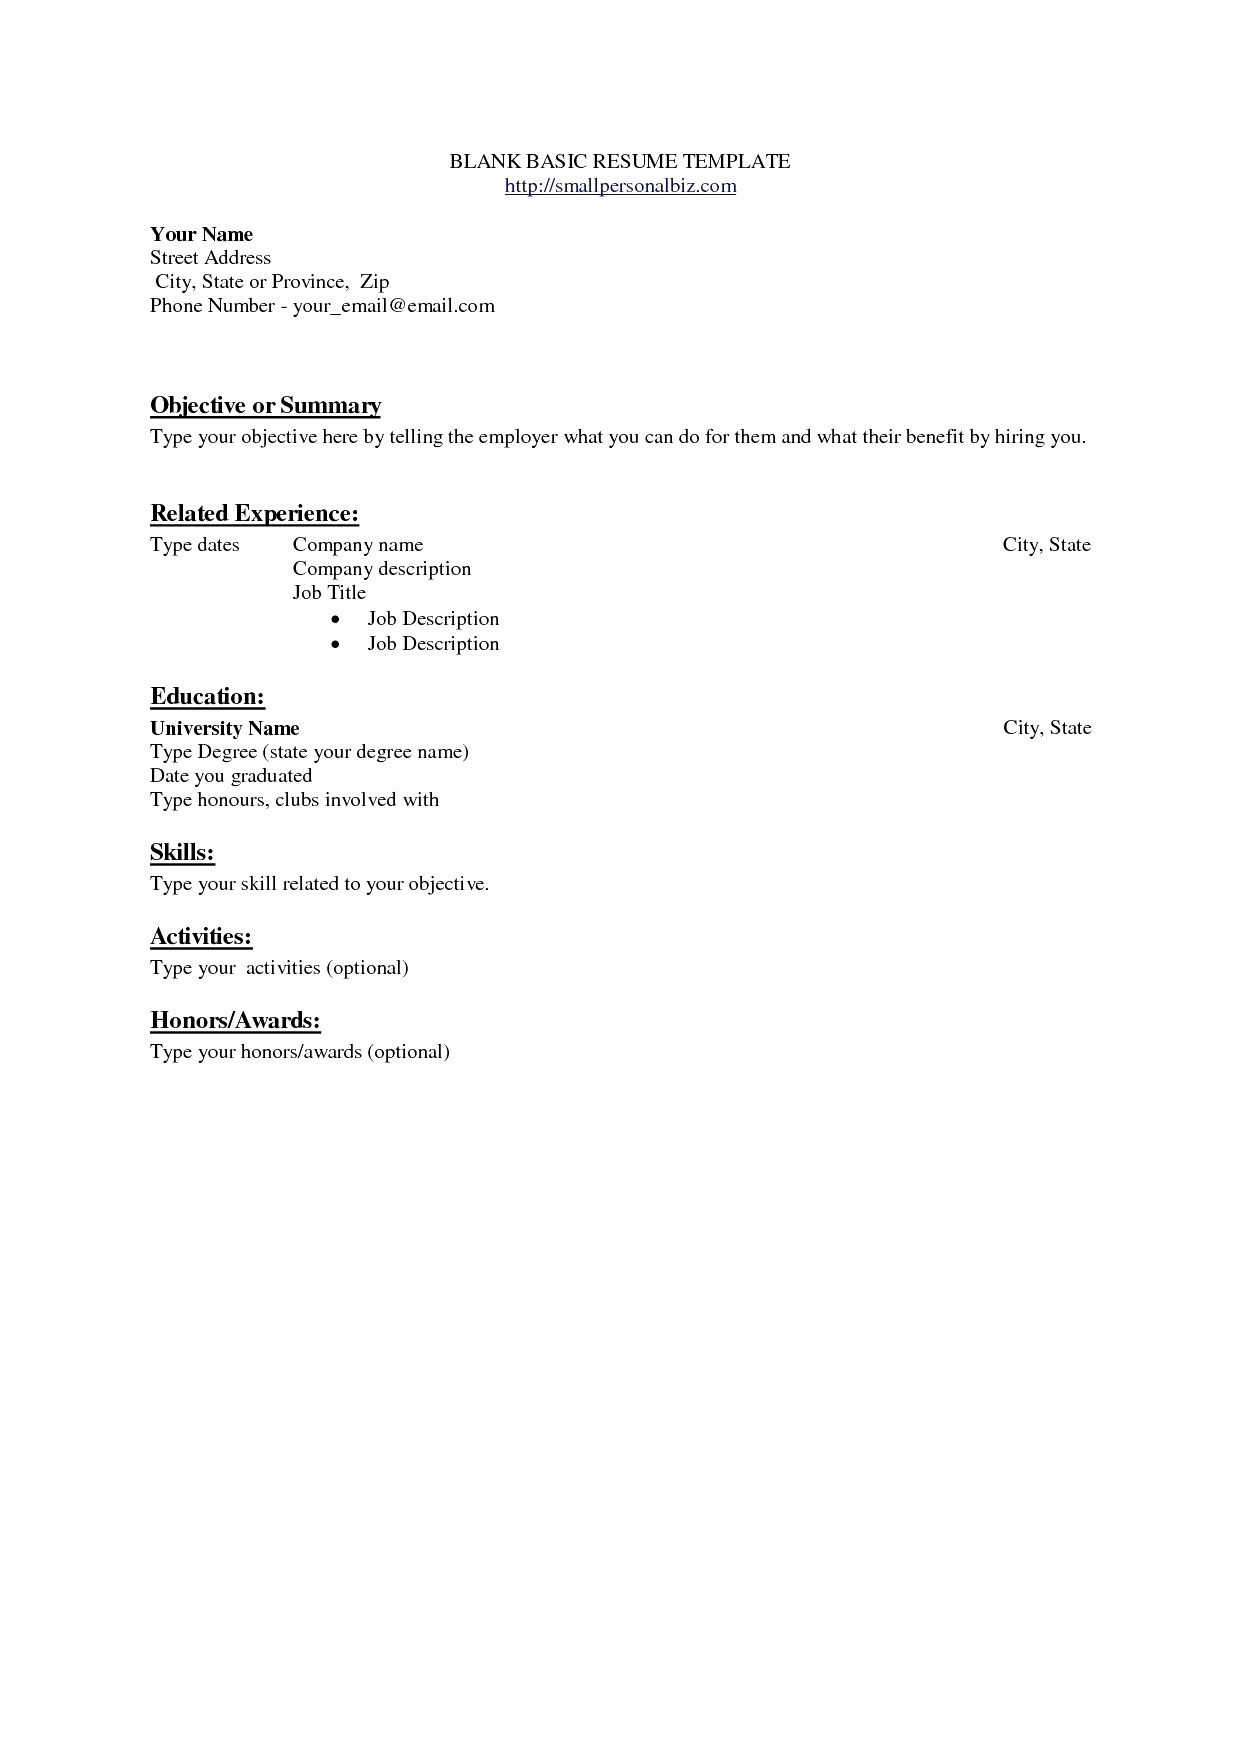 Resume Email Address - Interview Fer Email Beautiful Example Job Resume Fresh Luxury